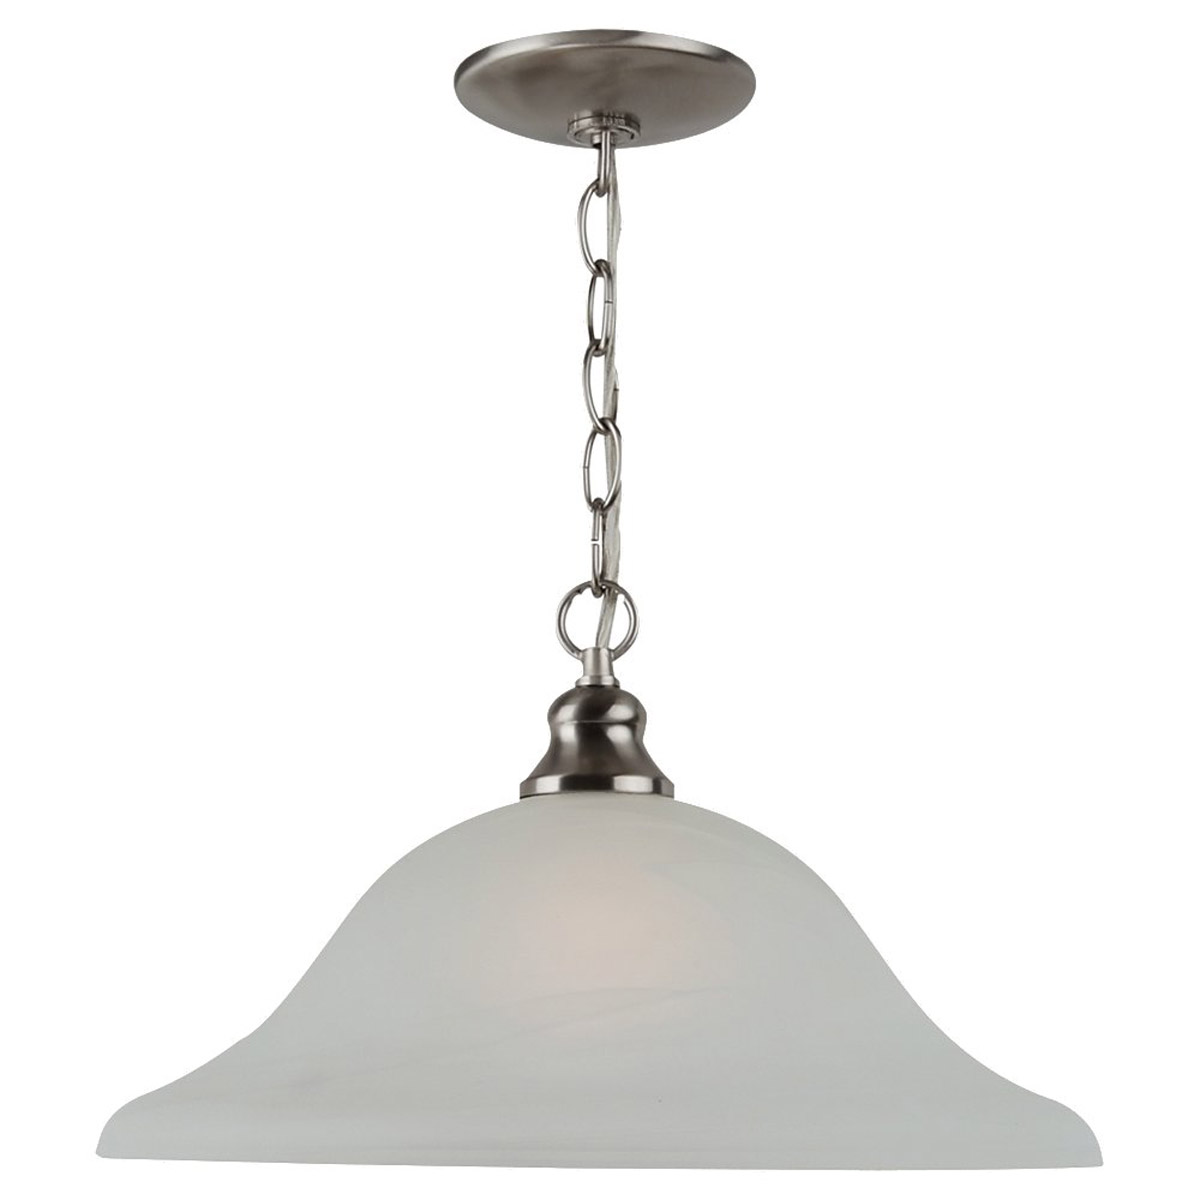 Sea Gull Lighting Windgate 1 Light Pendant in Brushed Nickel 65942-962 photo